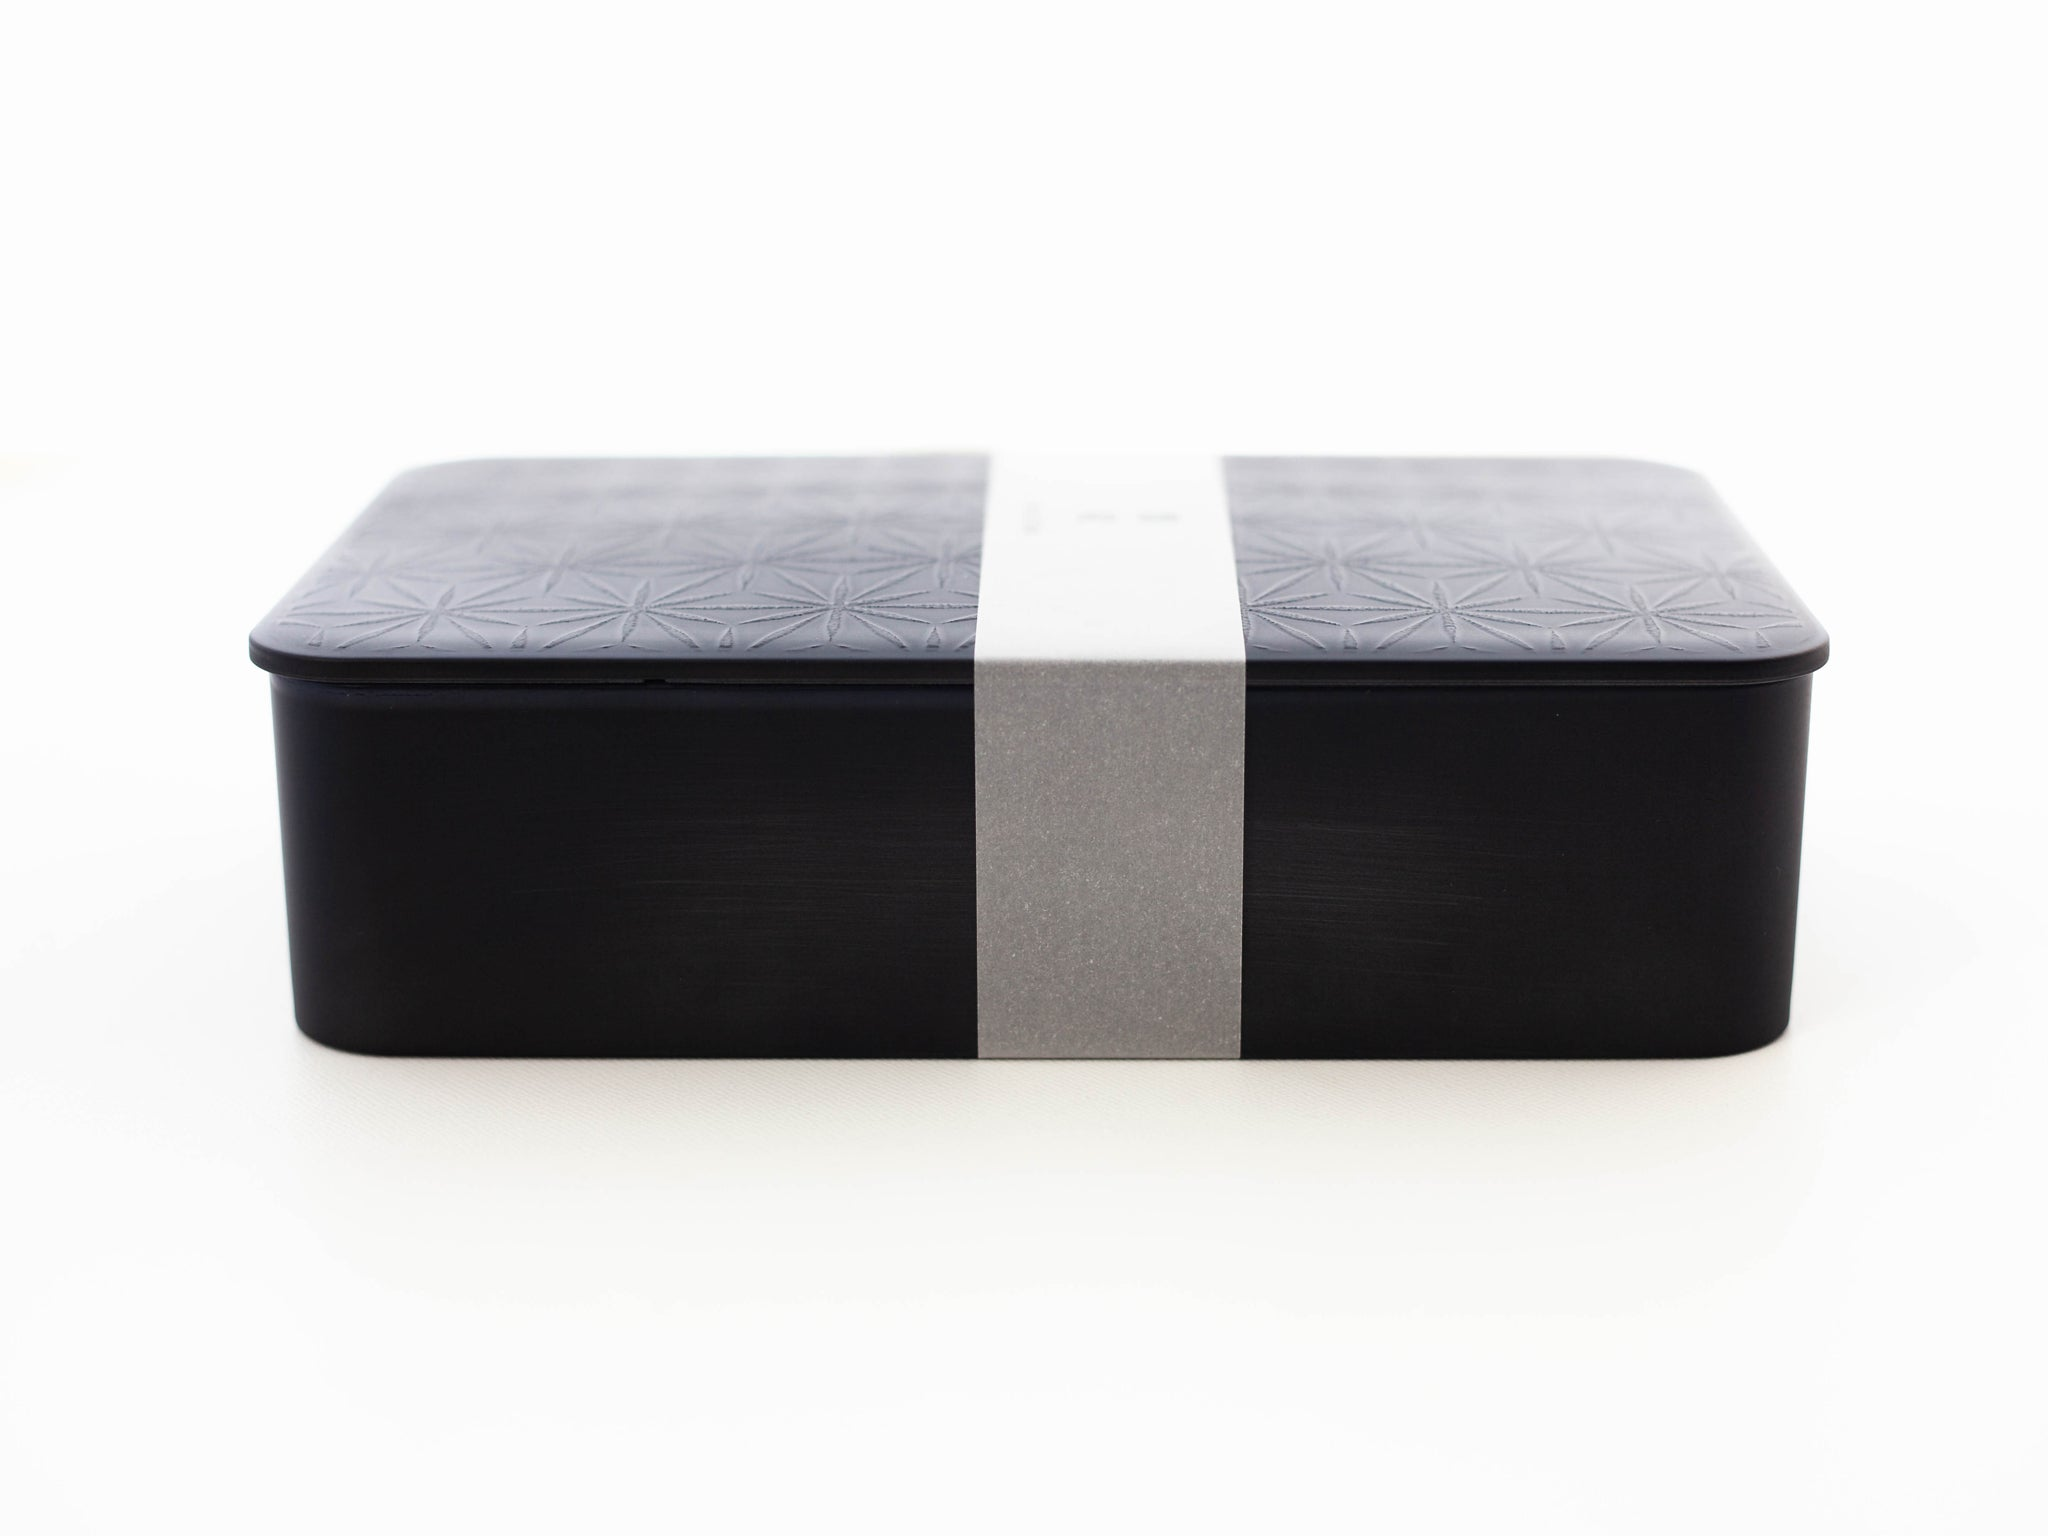 Kokutan One Tier Bento Box | Asanoha by Hakoya - Bento&co Japanese Bento Lunch Boxes and Kitchenware Specialists